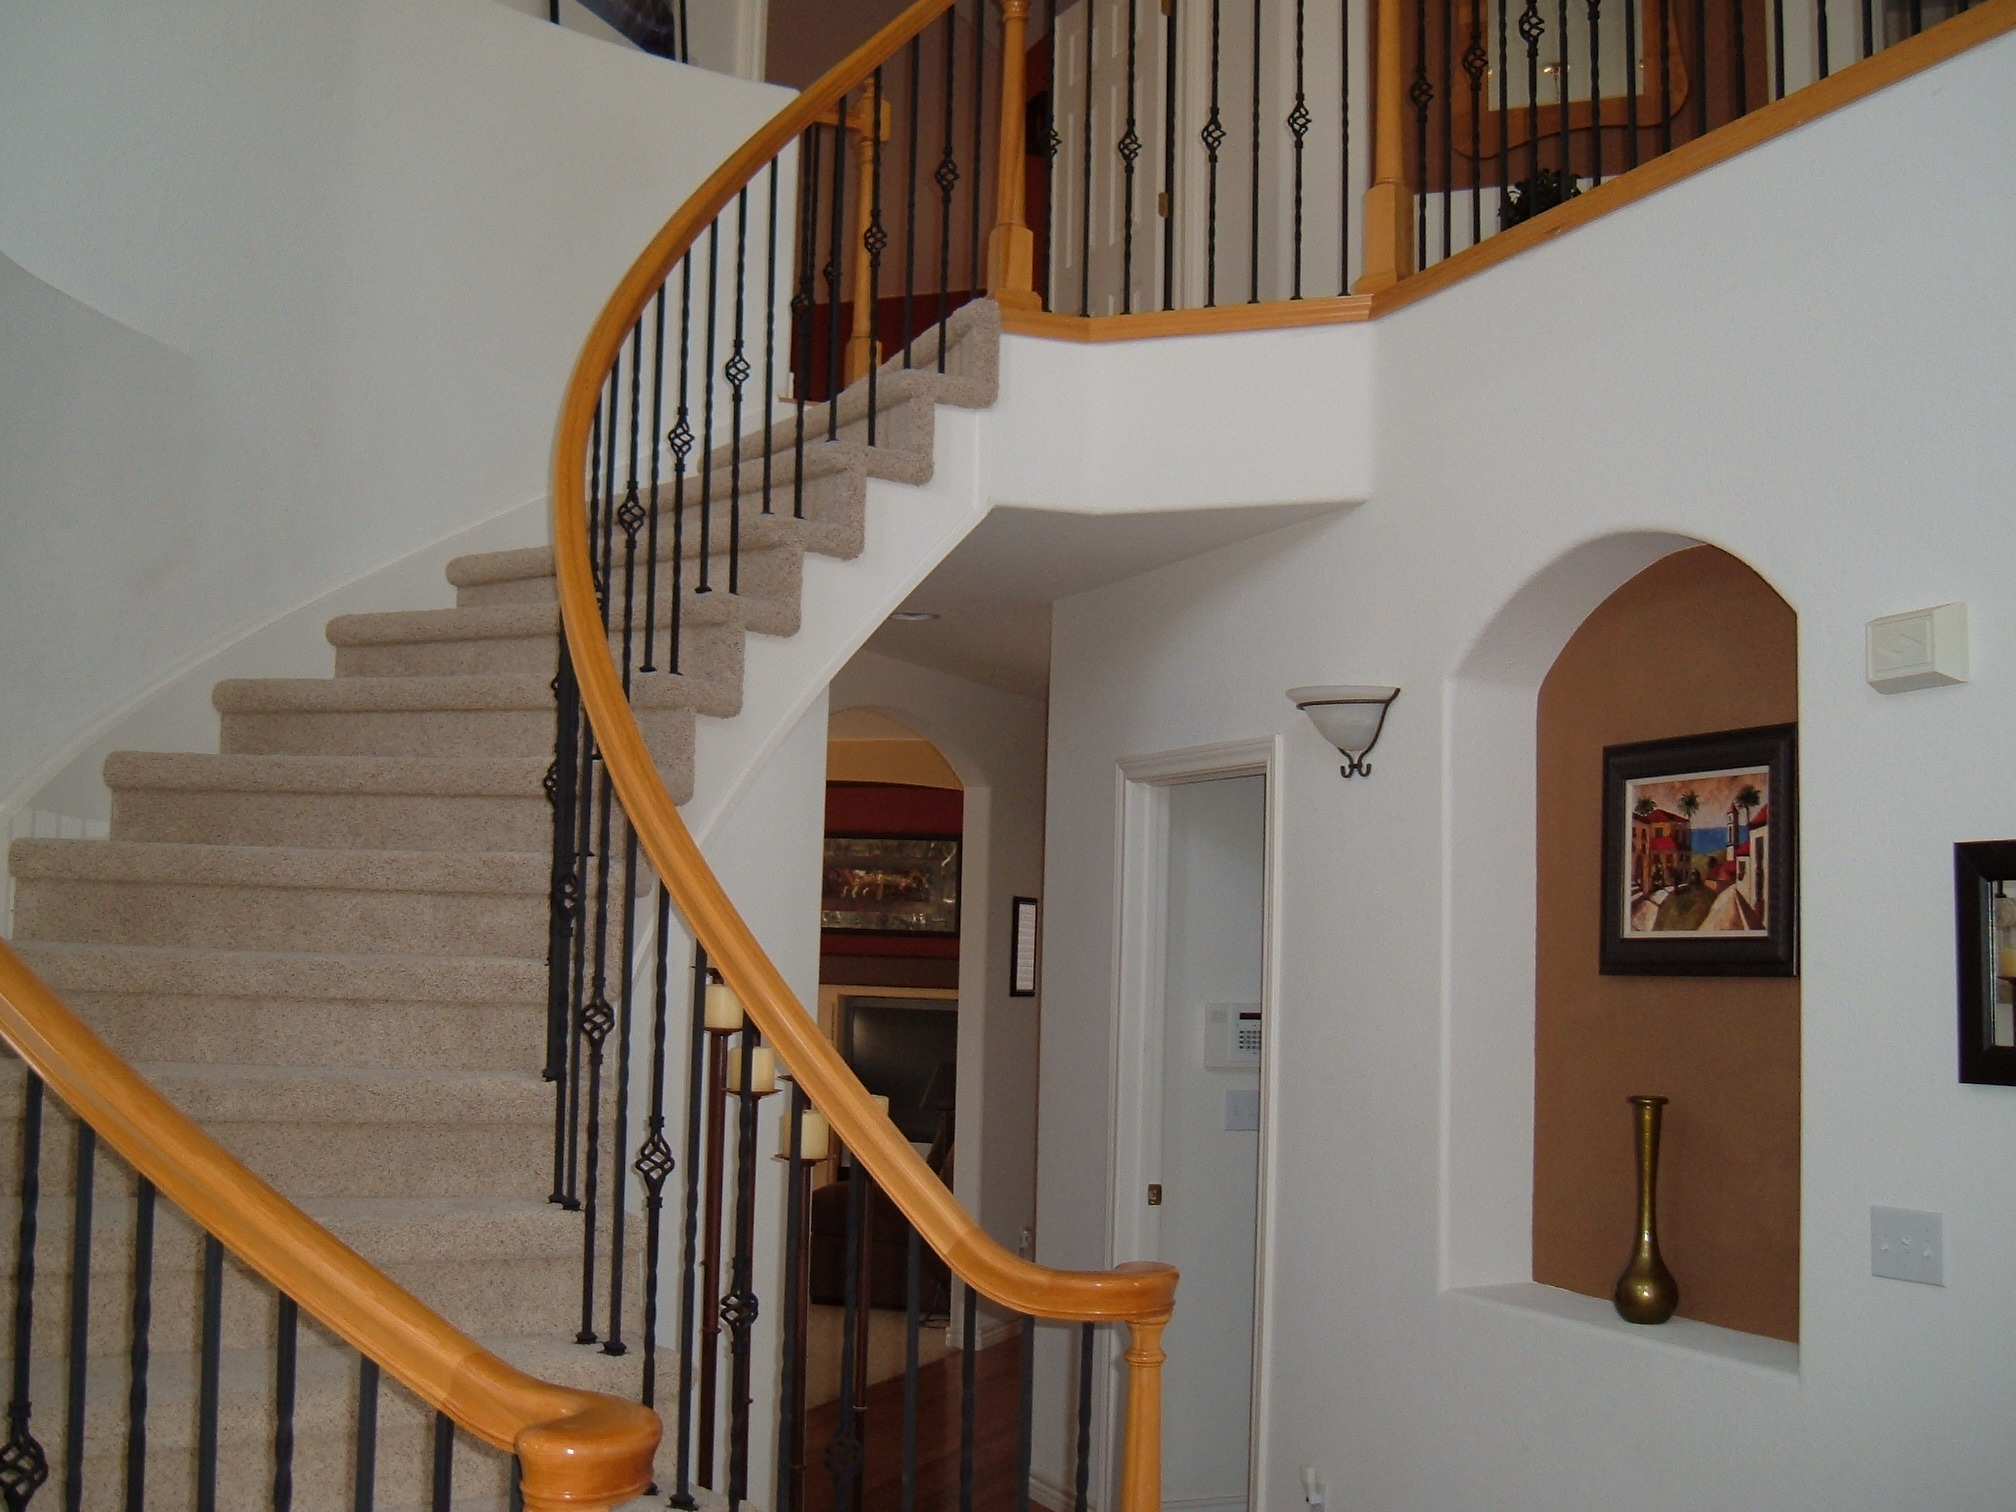 Iron Balusters And Railings Denver Colorado Parker